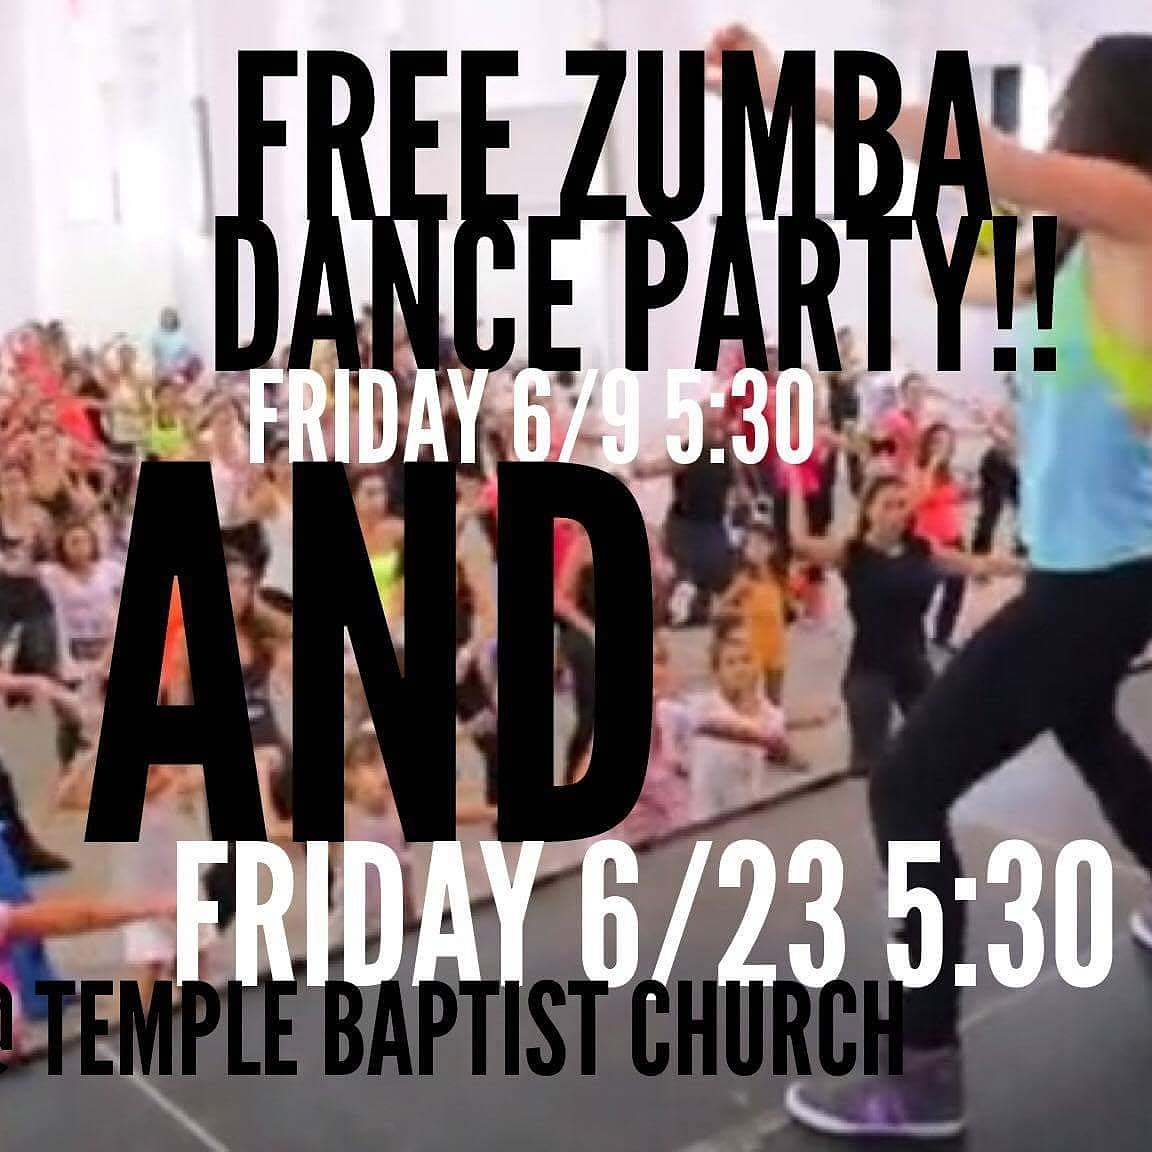 FREE Zumba Dance Party Event Page